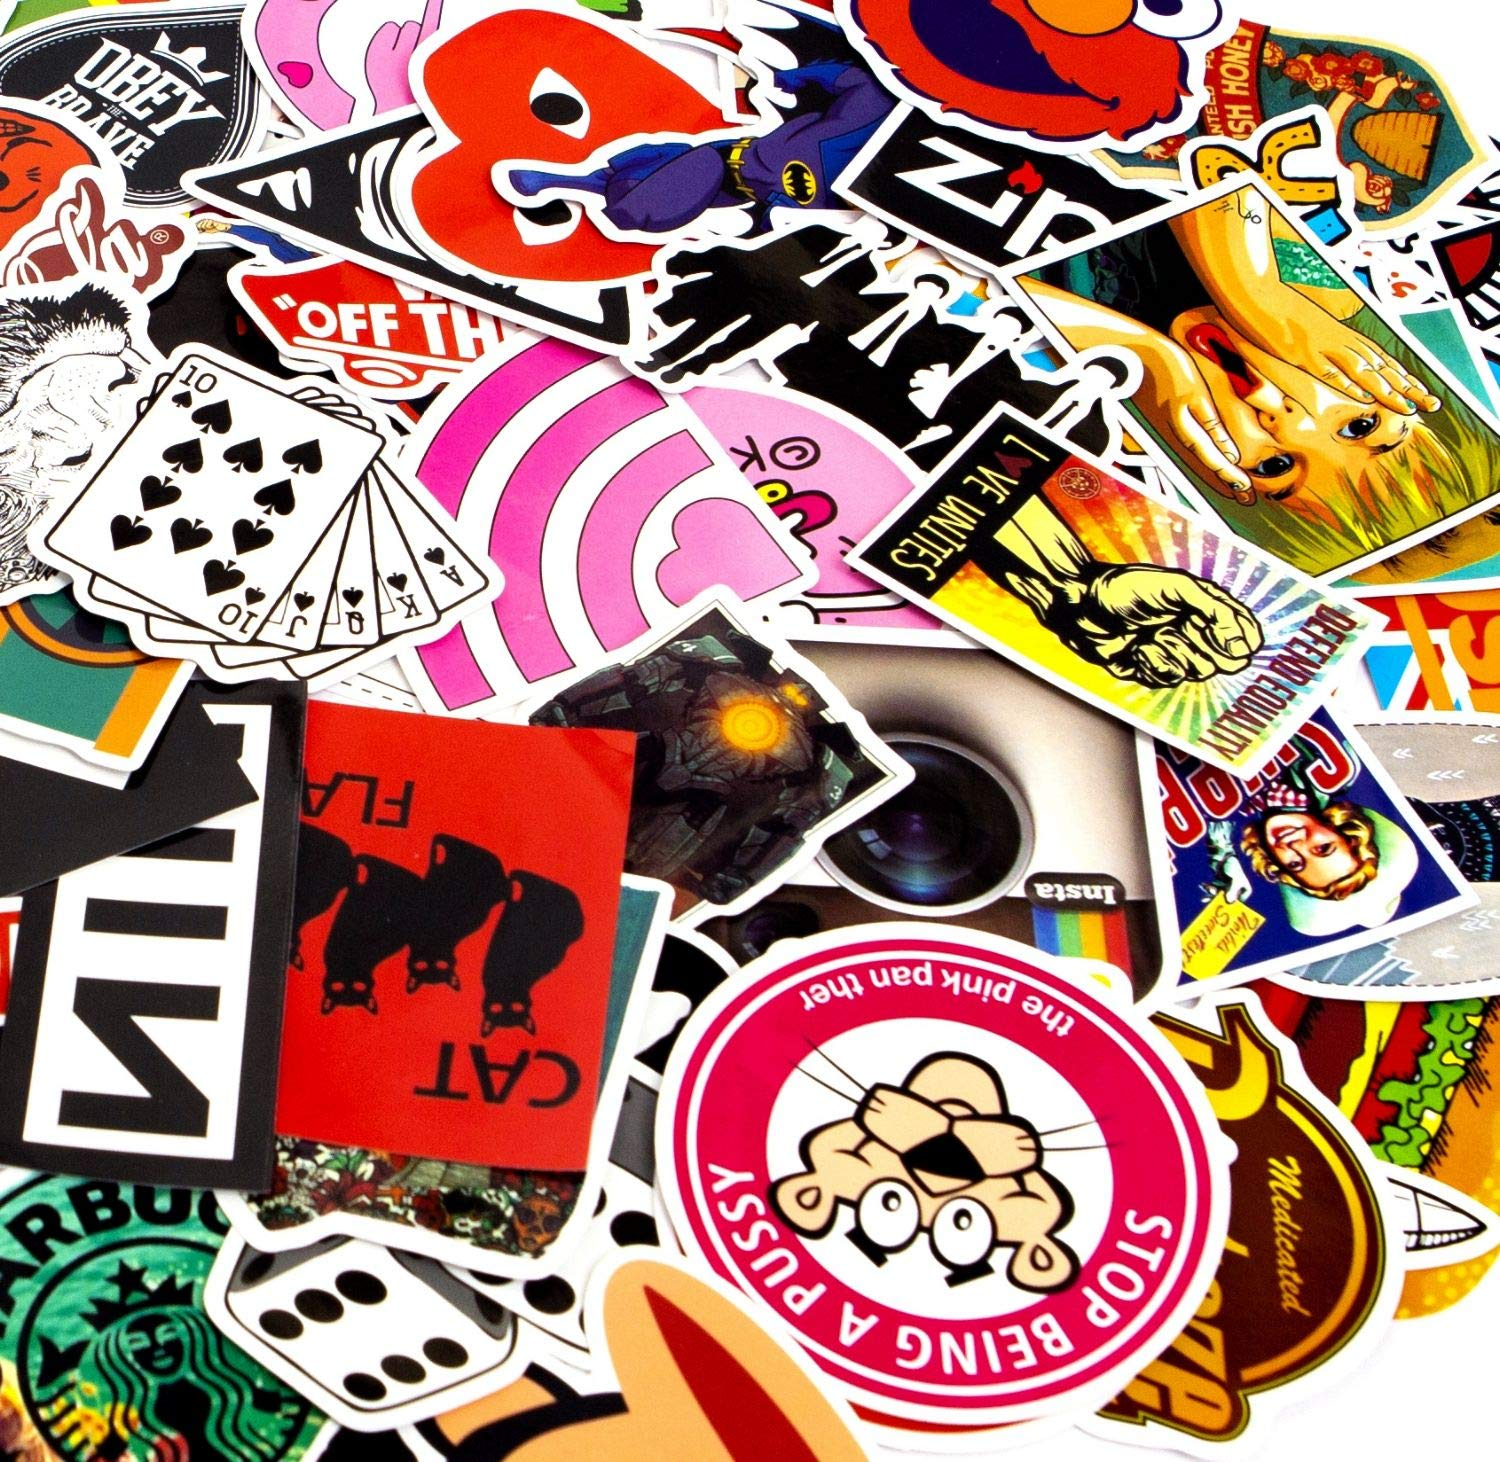 200-Pcs Featured Stickers Decals Vinyls for Laptop,Kids,Cars,Motorcycle,Bicycle,Skateboard Luggage,Bumper ,Suitable for children and adults of all ages,Fast Shipped by 50~500 Pcs//Pack